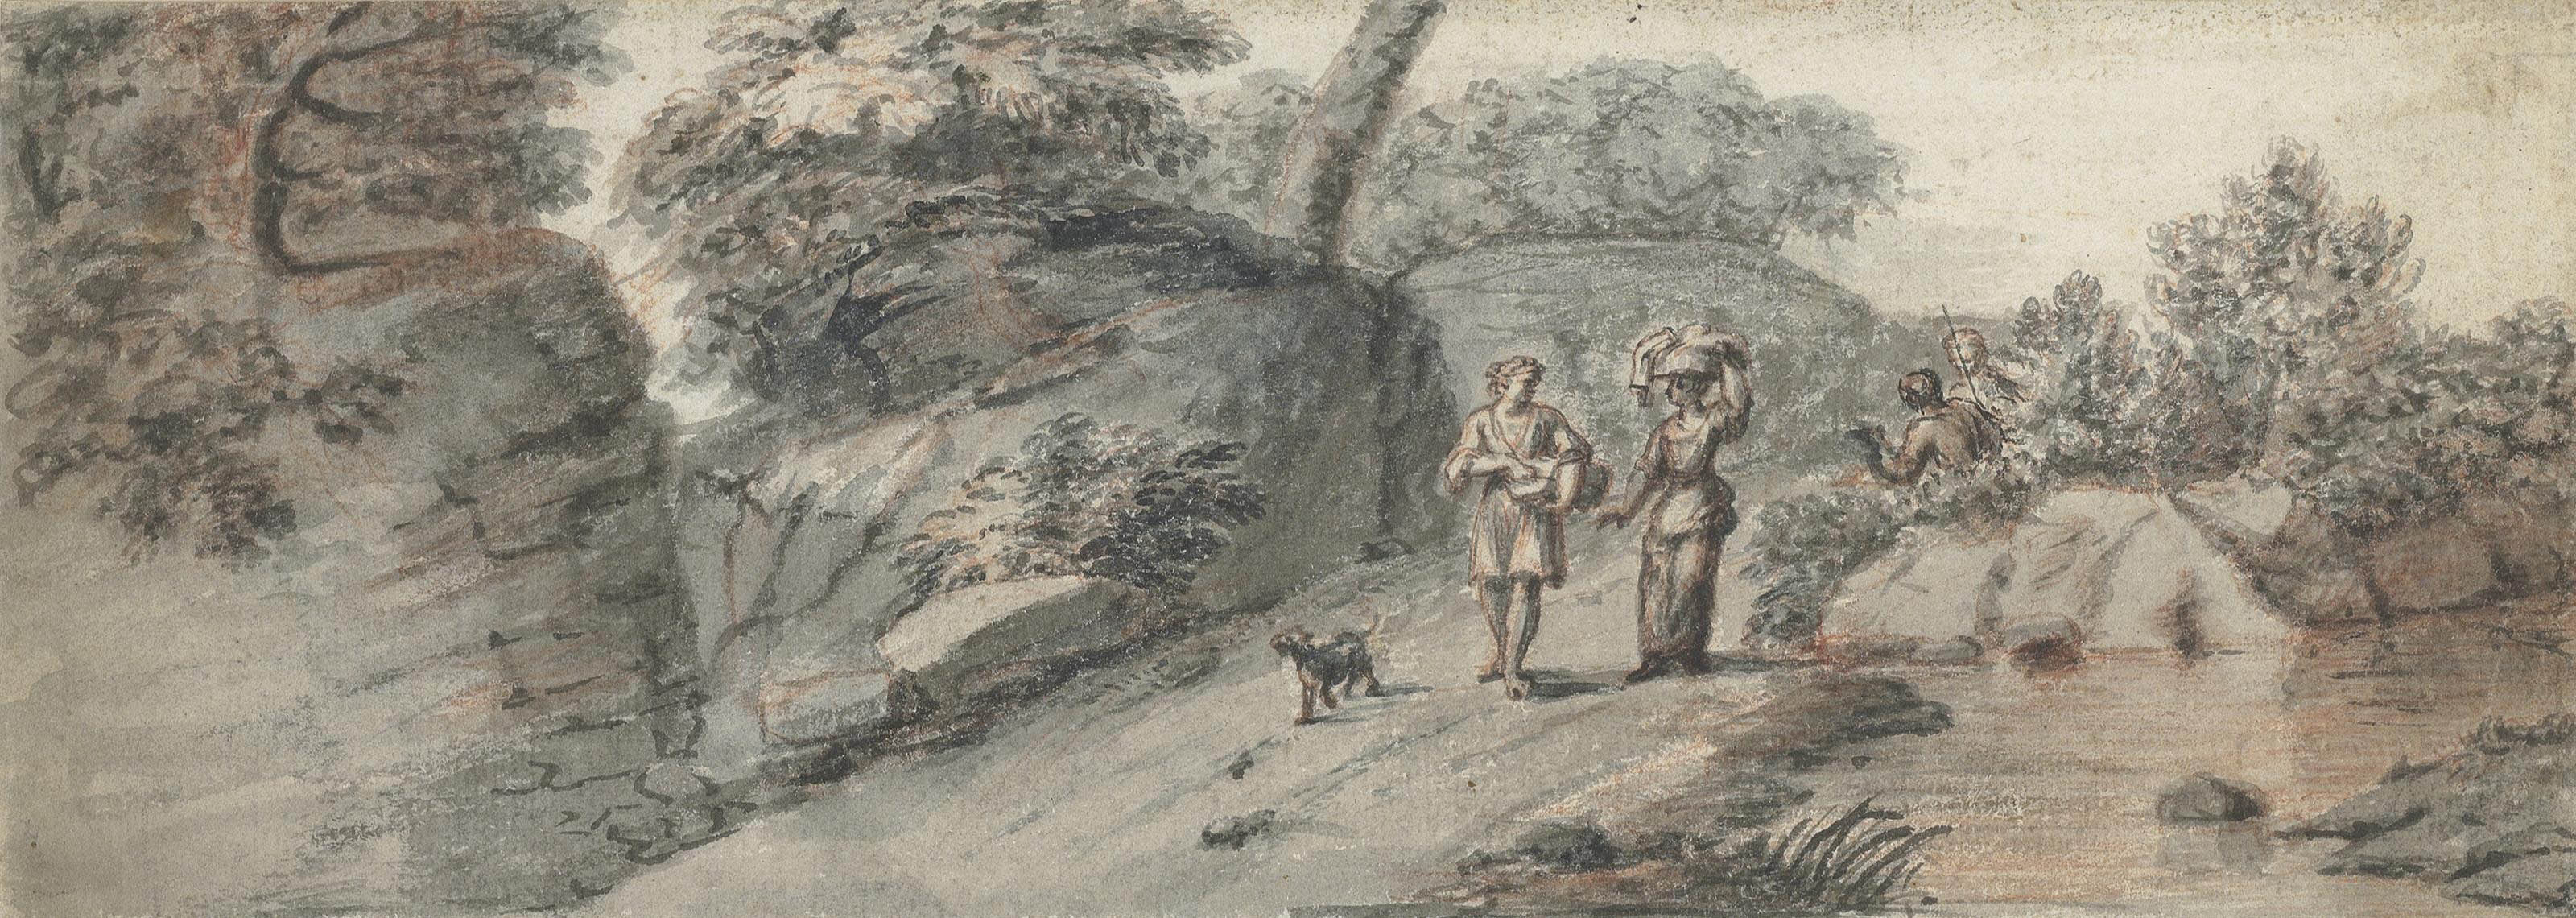 Figures on a wooded country road